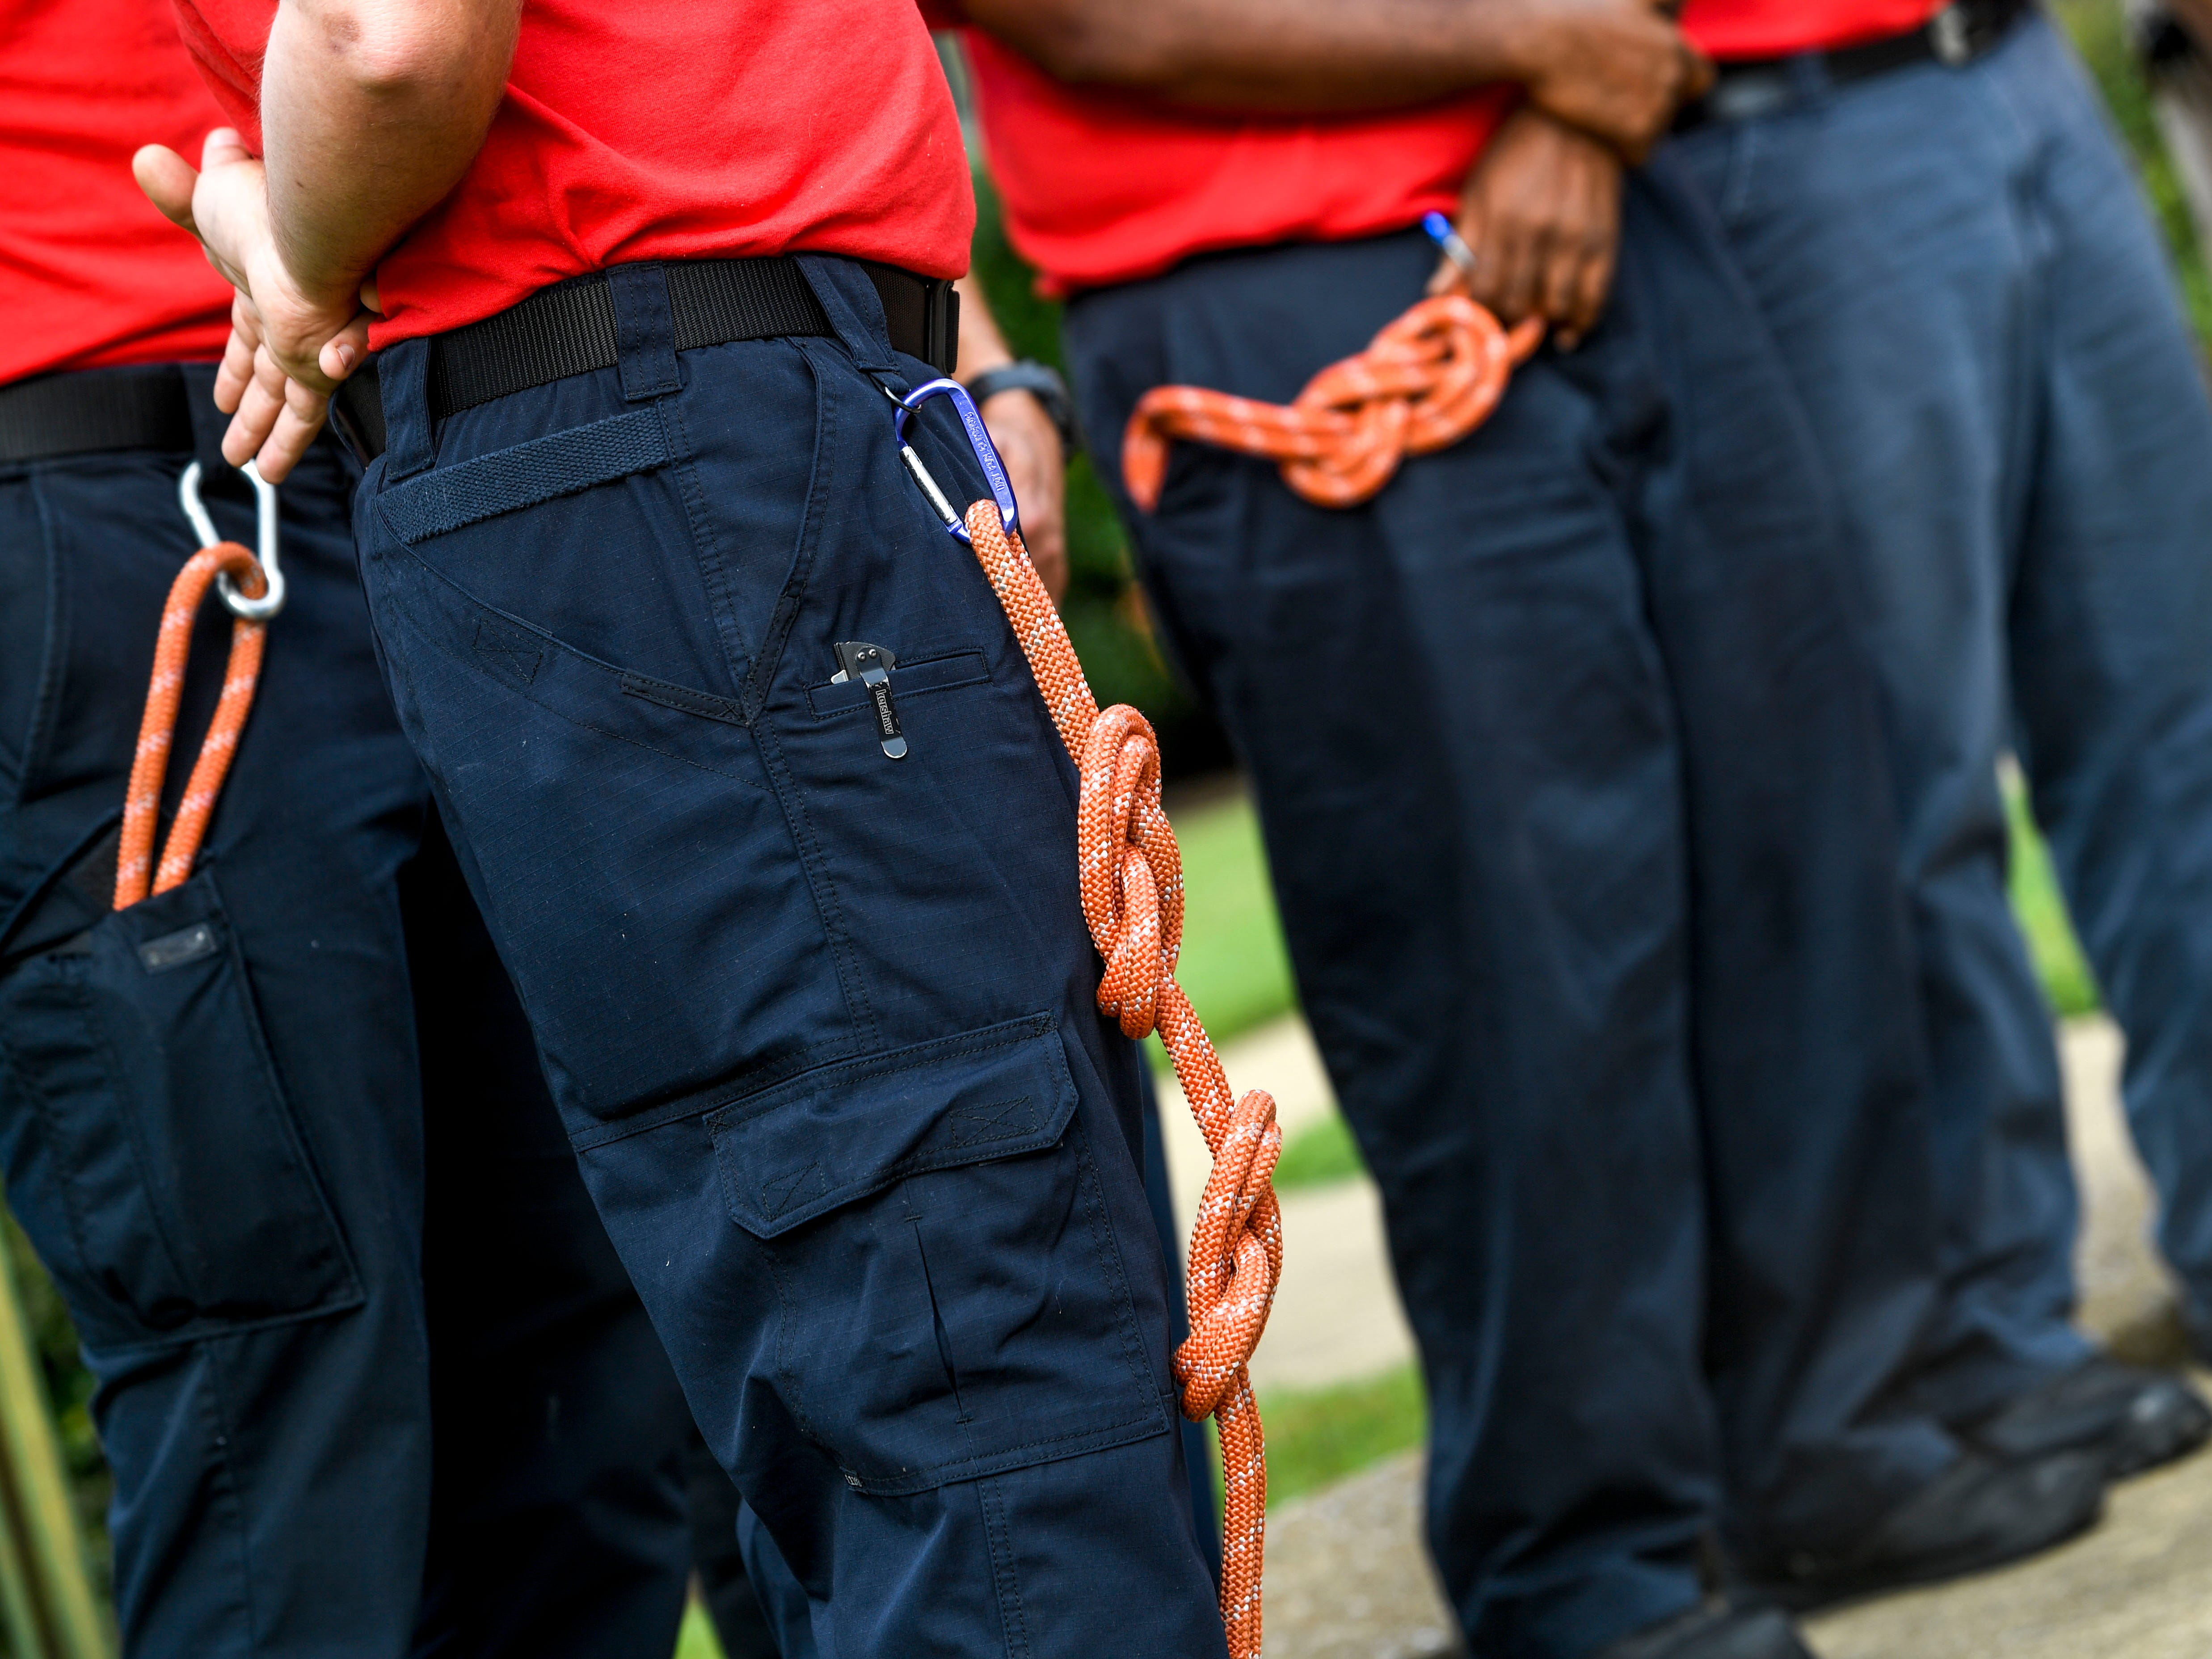 Recruits to the Jackson Fire Department stand at attention with ropes they are assigned to learn how to tie knots hanging from their belts during a ceremony honoring the victims of the 9/11 attacks at Fire Station 3 in Jackson, Tenn., on Tuesday, Sept. 11, 2018.